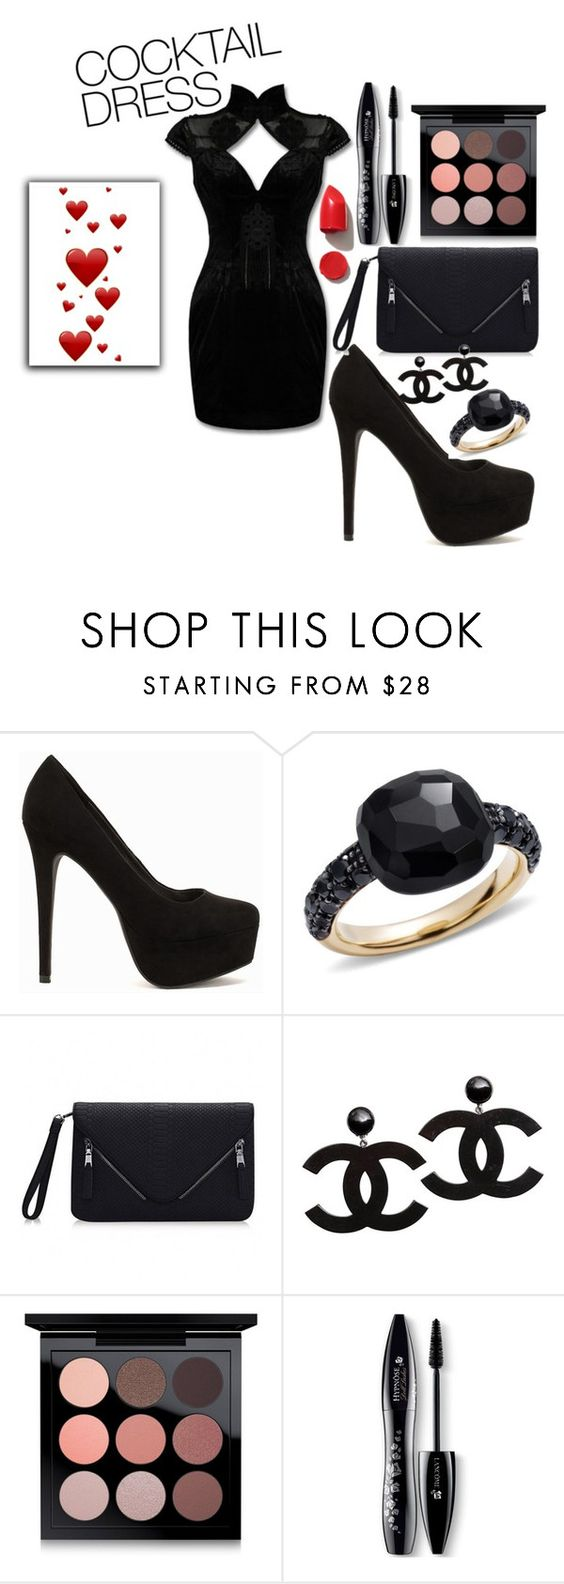 """""""jdjdjd"""" by lugavicaida ❤ liked on Polyvore featuring Nly Shoes, Pomellato, MAC Cosmetics, Lancôme and NARS Cosmetics"""